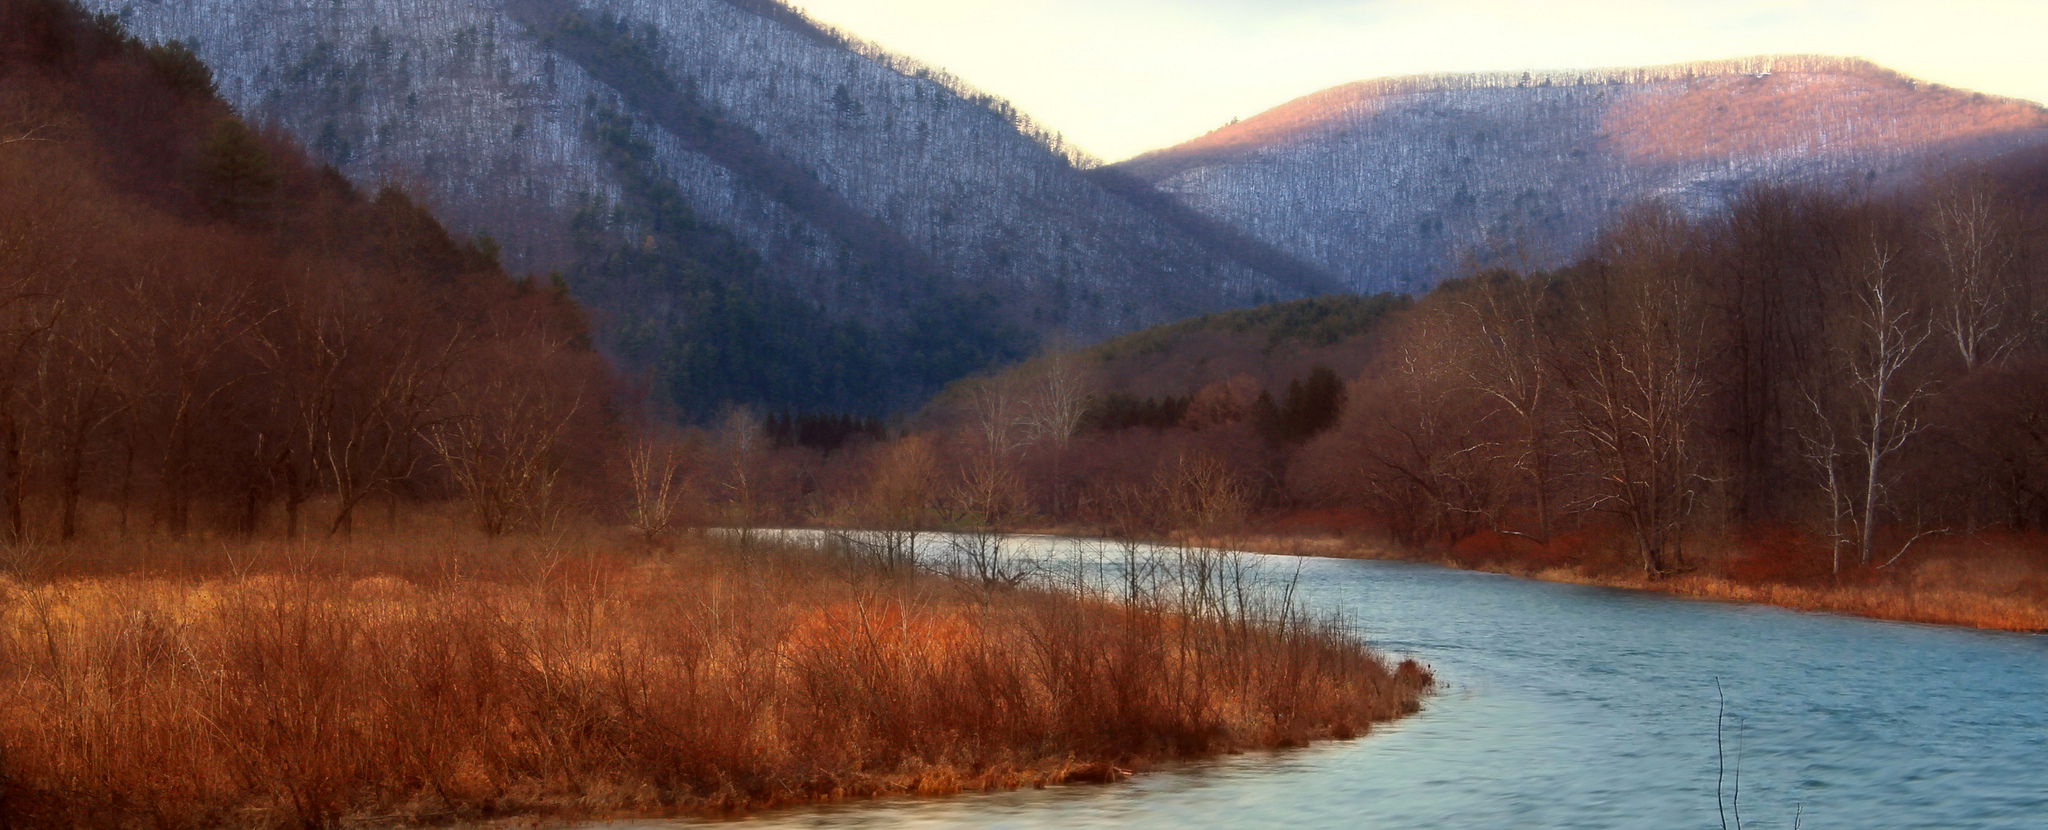 Bay Land Conservation Receives End-of-Year Boost